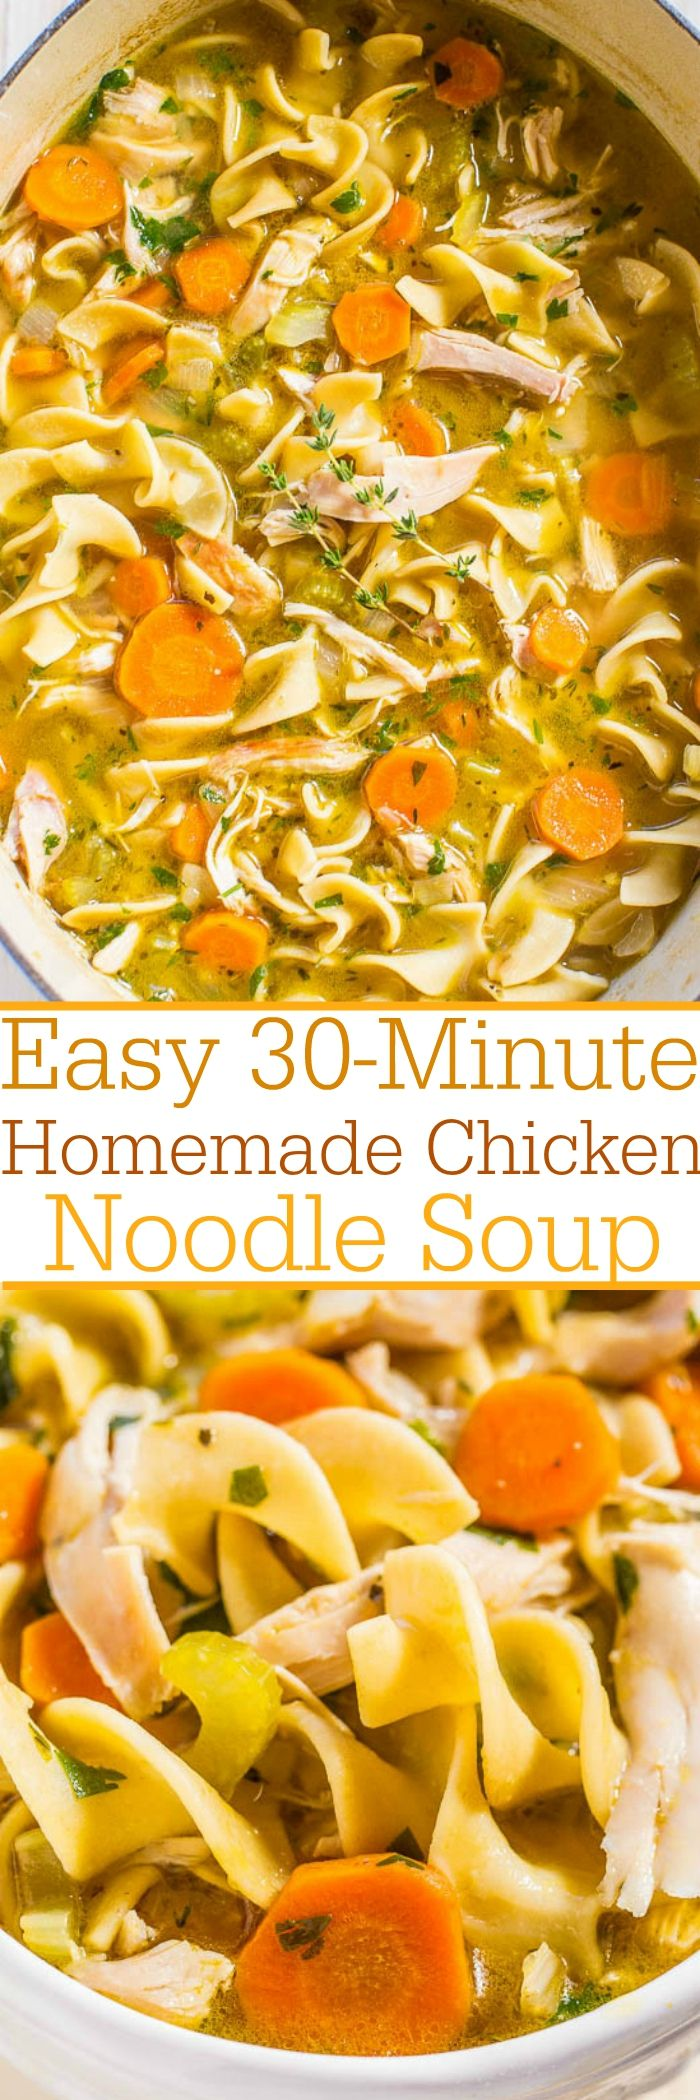 15 Soups to Make with Leftover Rotisserie Chicken #chickennoodlesoup